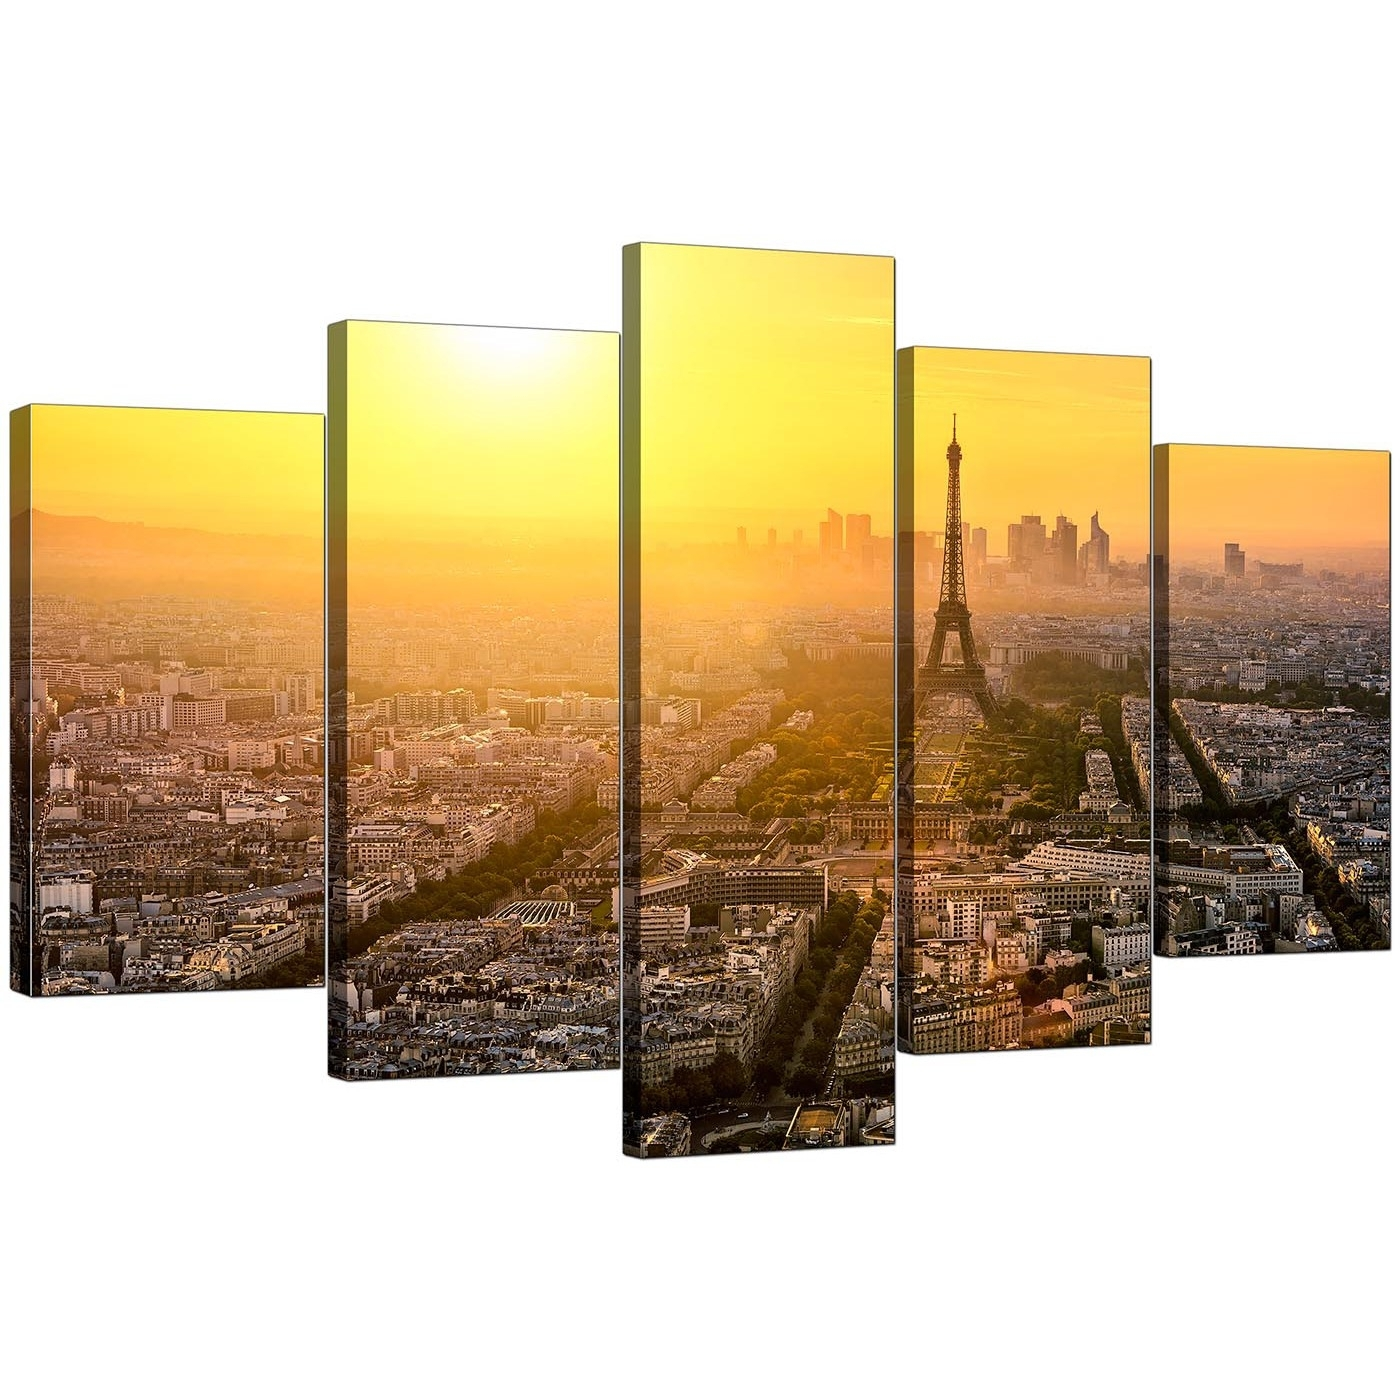 Paris Skyline Canvas Pictures For Your Office – 5 Panel With Regard To 2018 Canvas Wall Art Of Paris (Gallery 9 of 15)